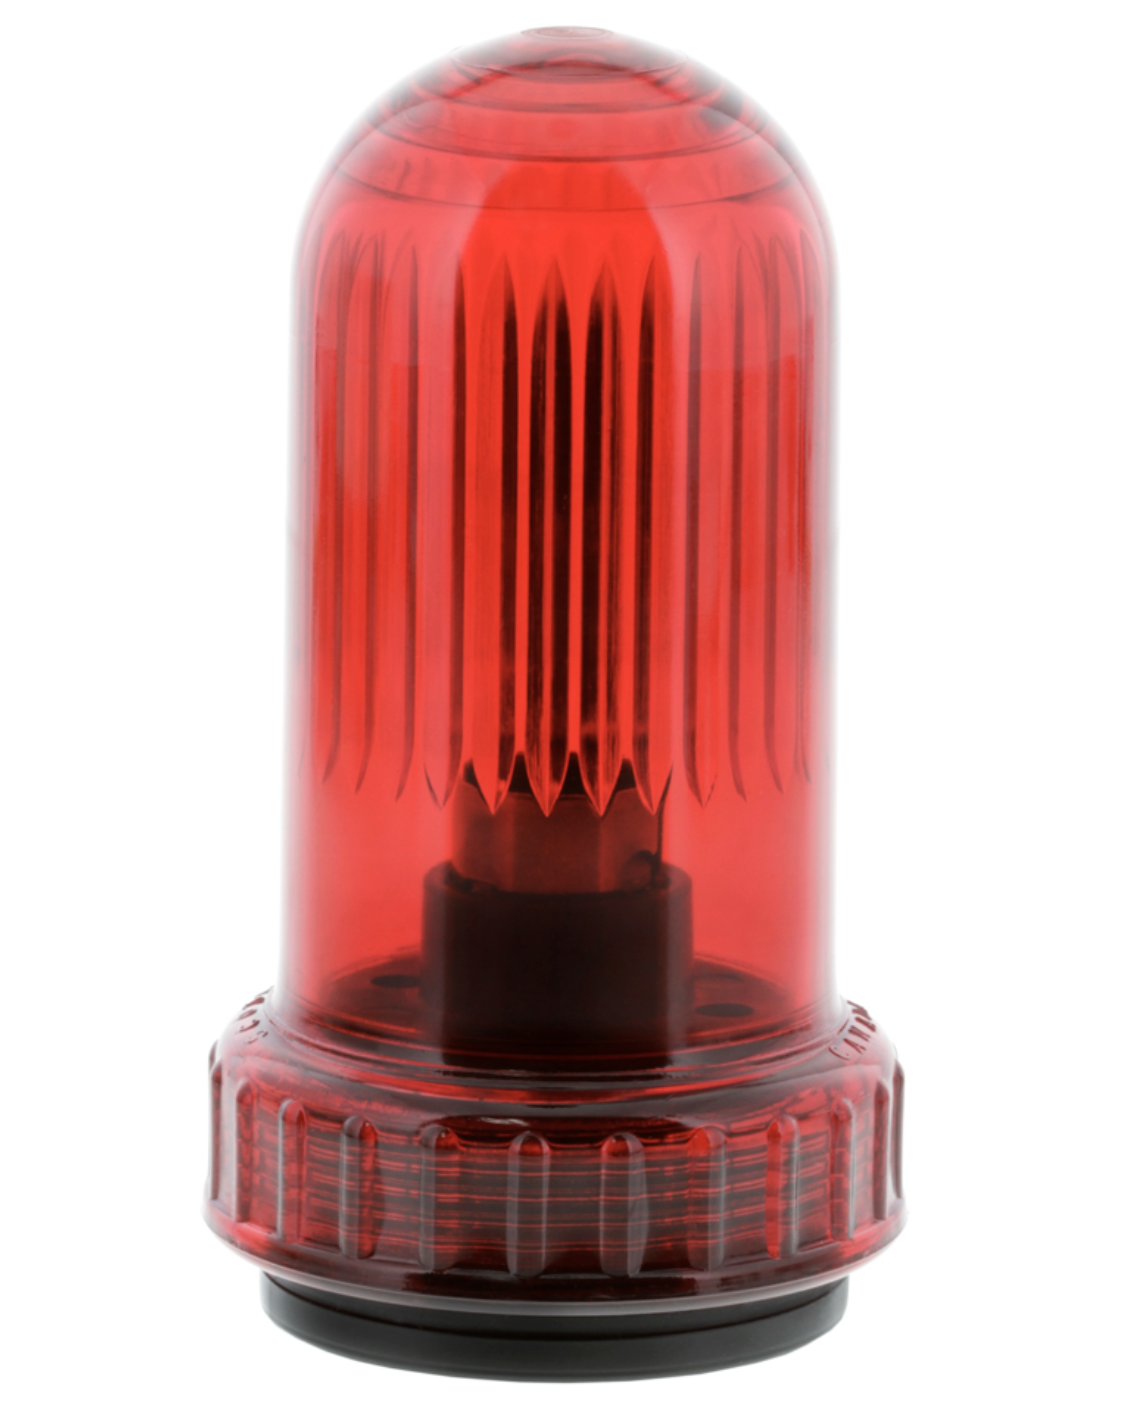 Safety & Rescue: 806 - Navigation Light - 12 Volt by Scotty - Image 4847